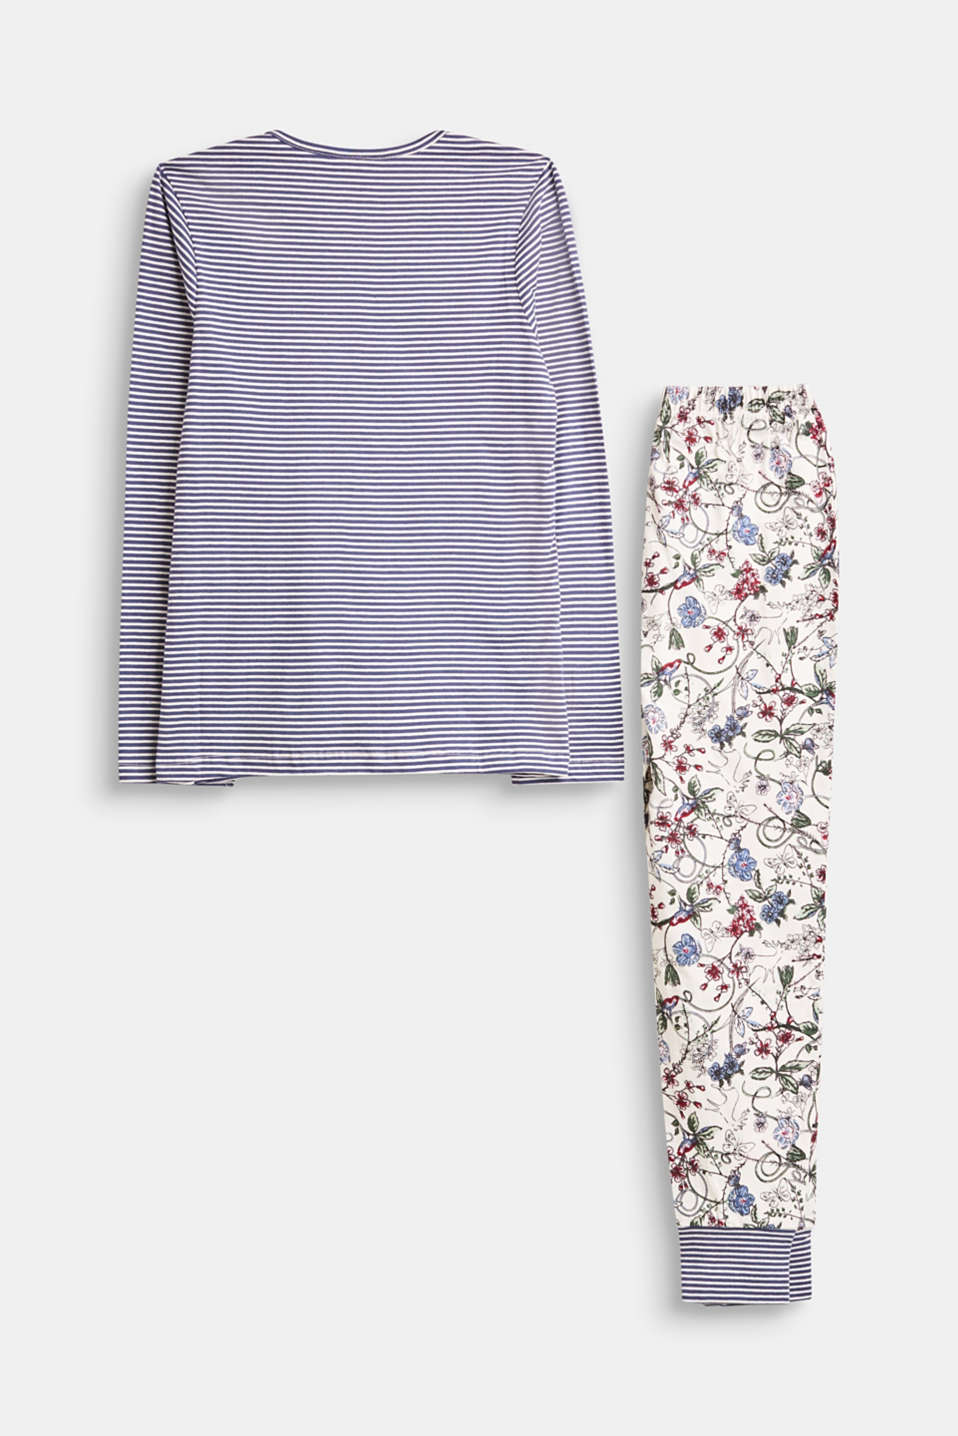 Pyjama set with a mix of stripes and flowers, 100% cotton